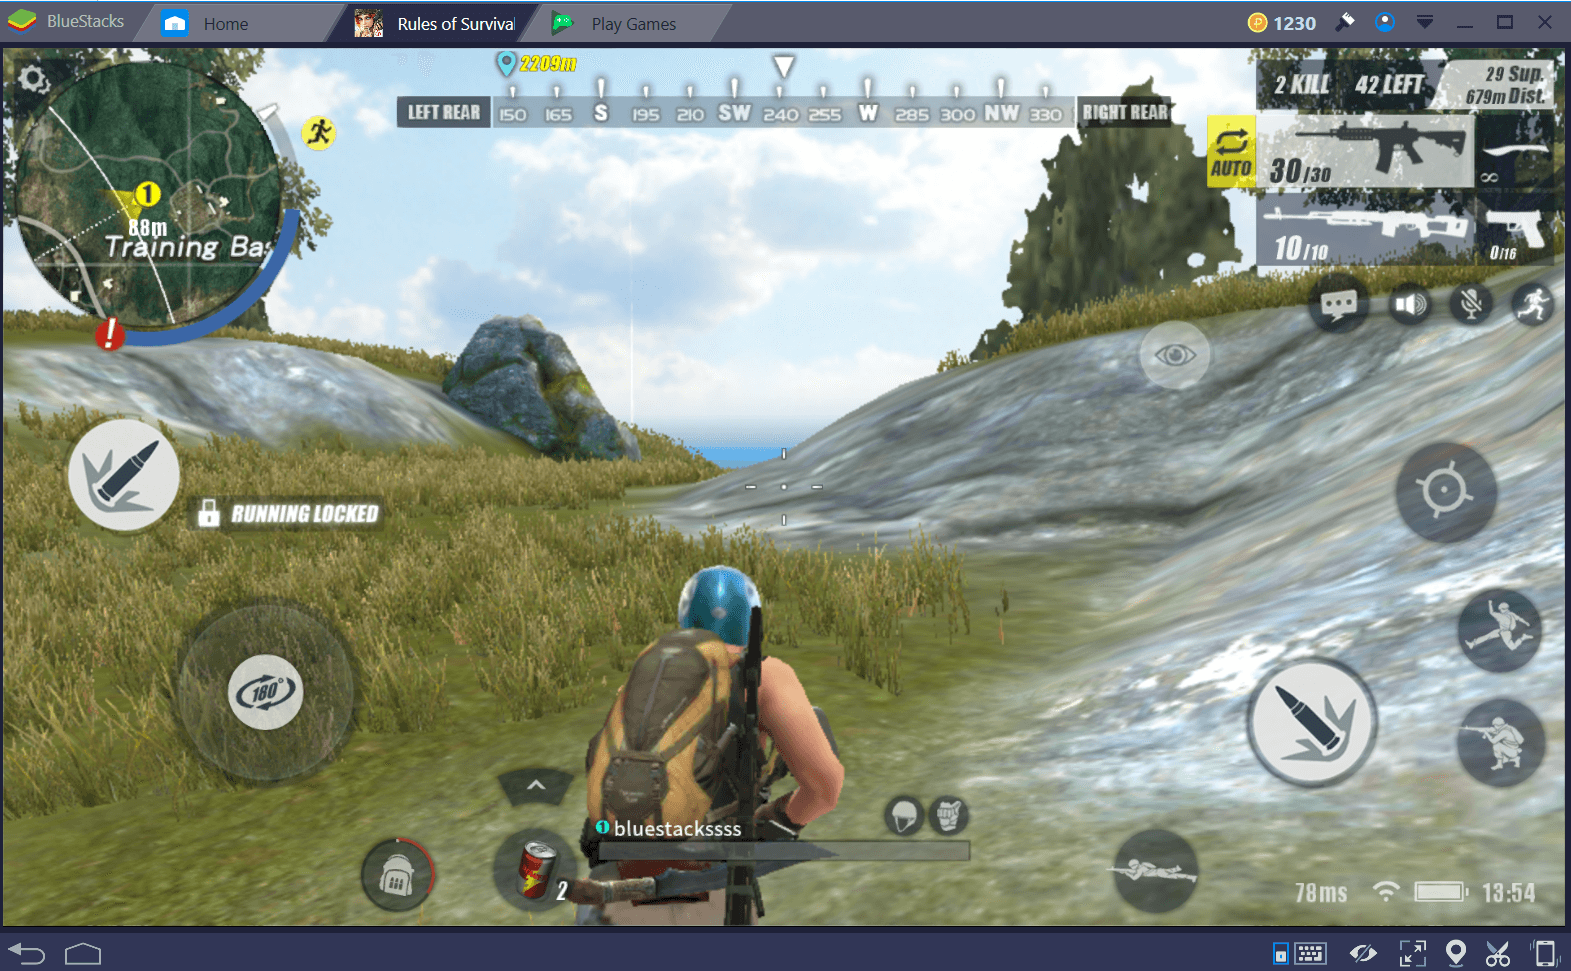 Rules Of Survival Ekipman Bilgisi